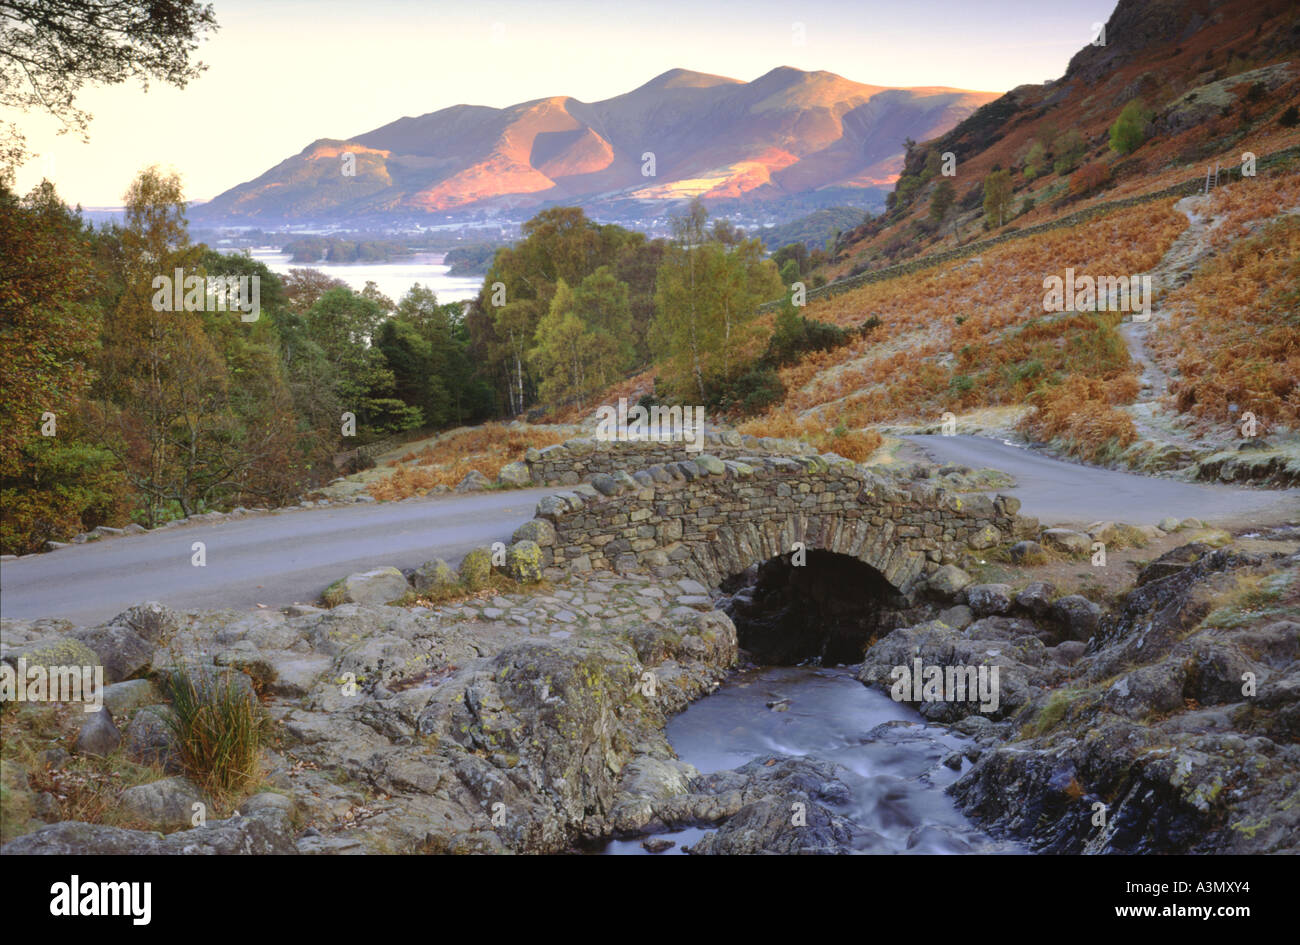 Ashness Bridge looking across to Derwent Water and Skiddaw, within the Lake District - Stock Image